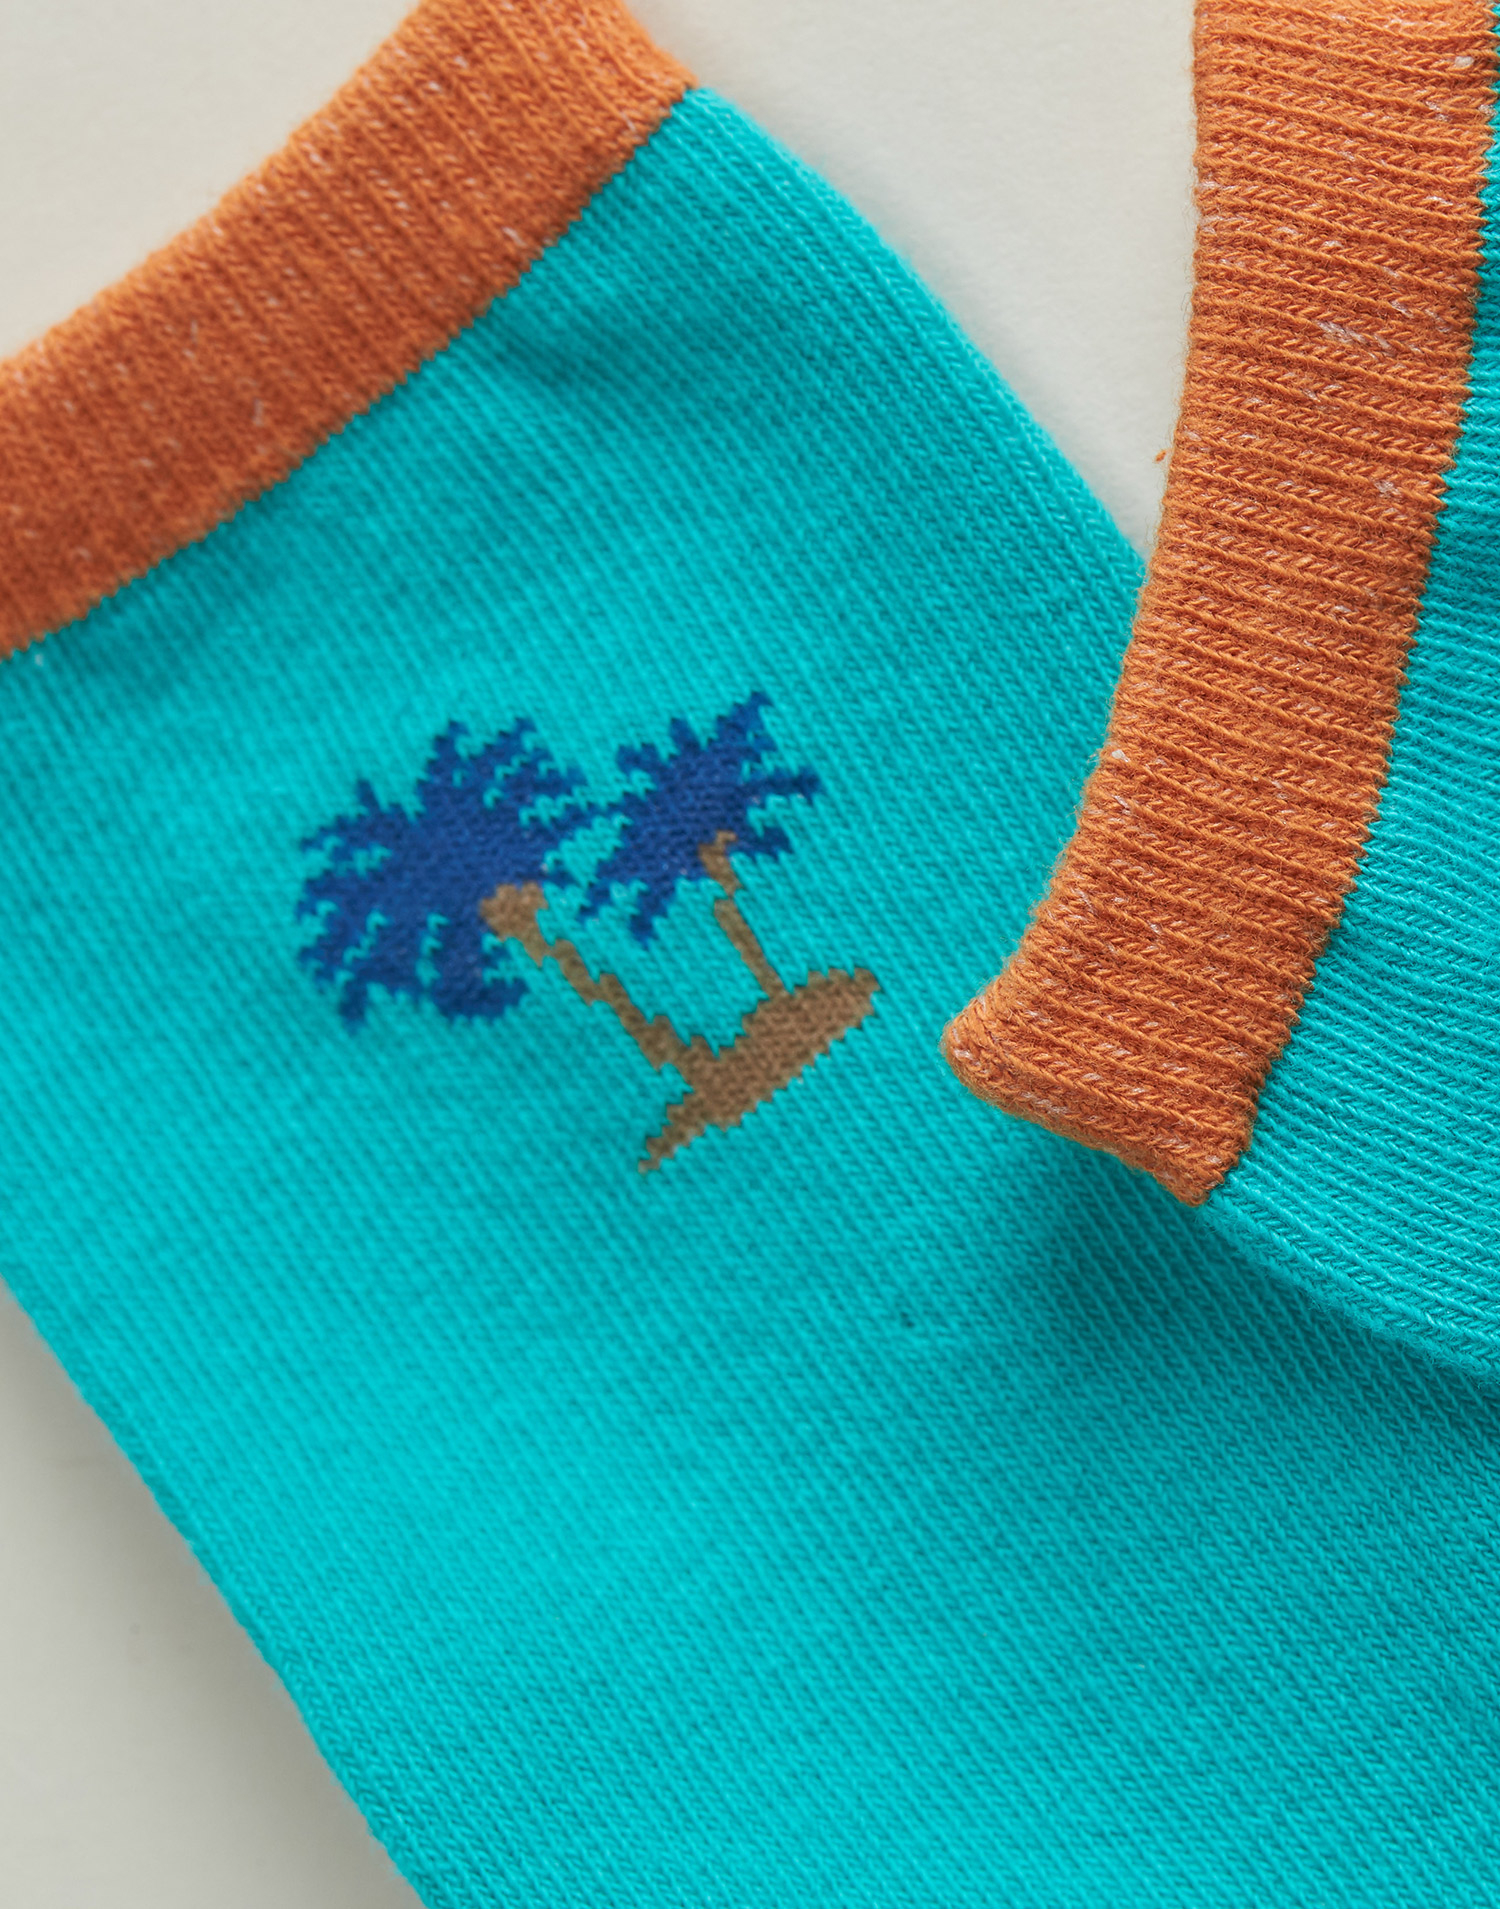 Parrot and palm tree man socks